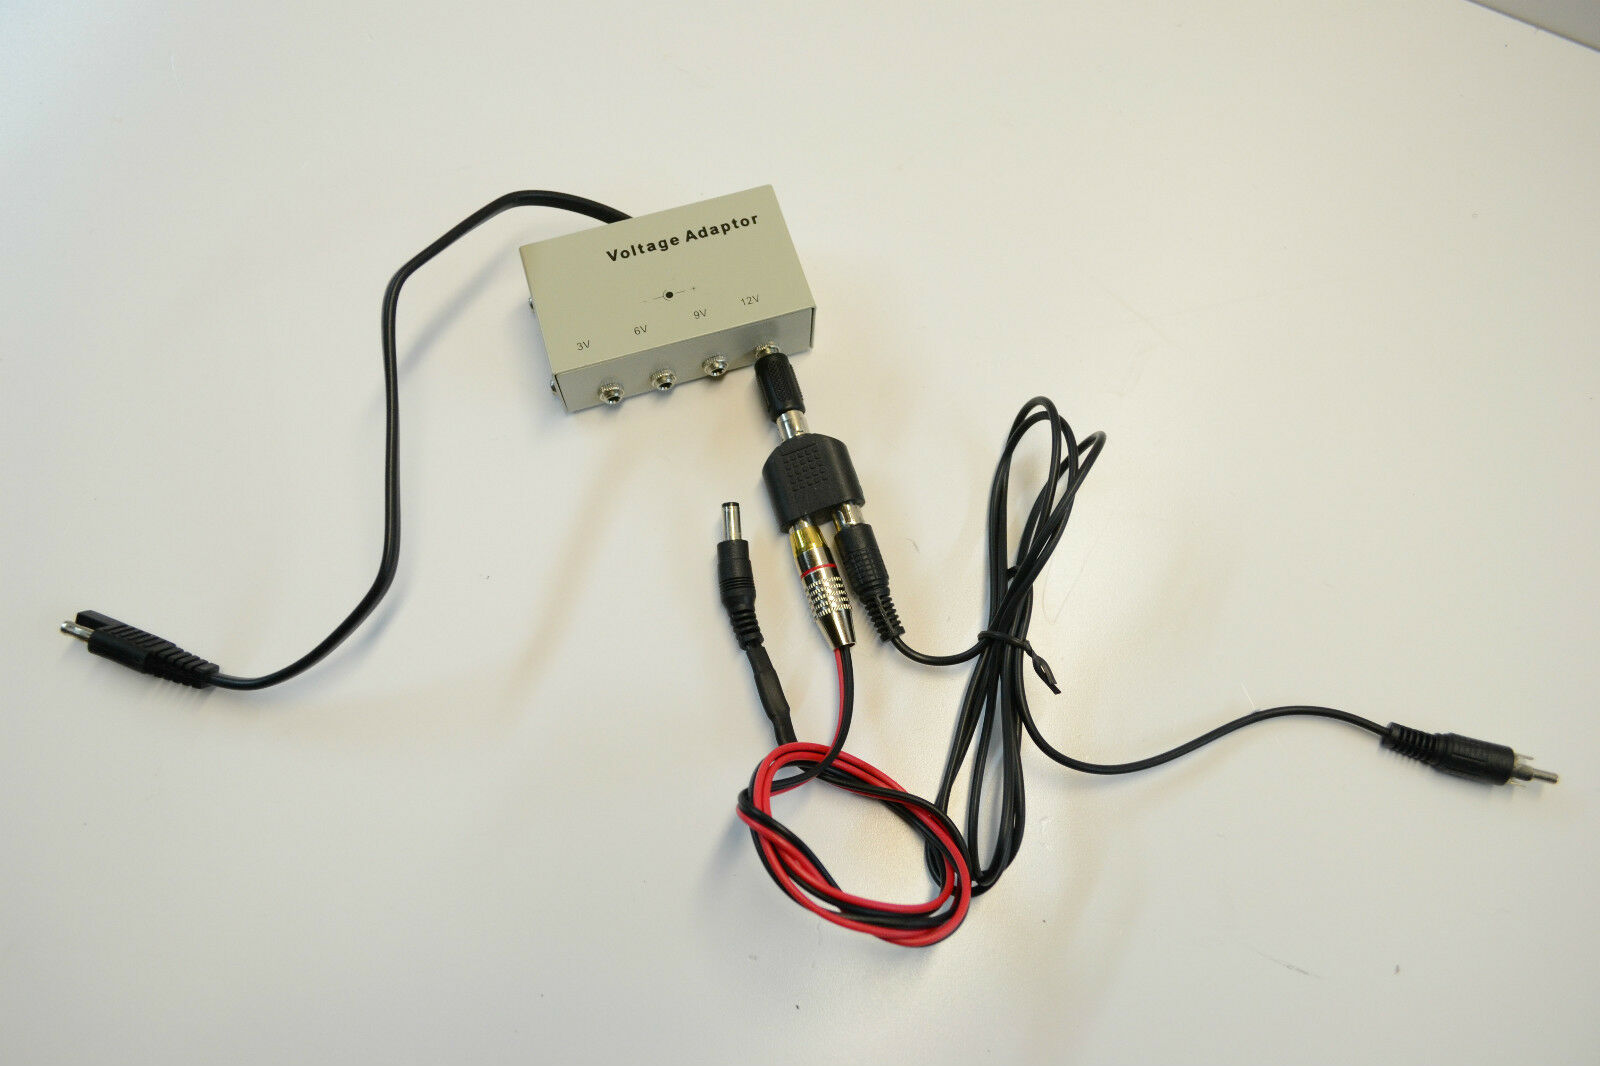 Bait Boat Solar Panel Adapter Leads only